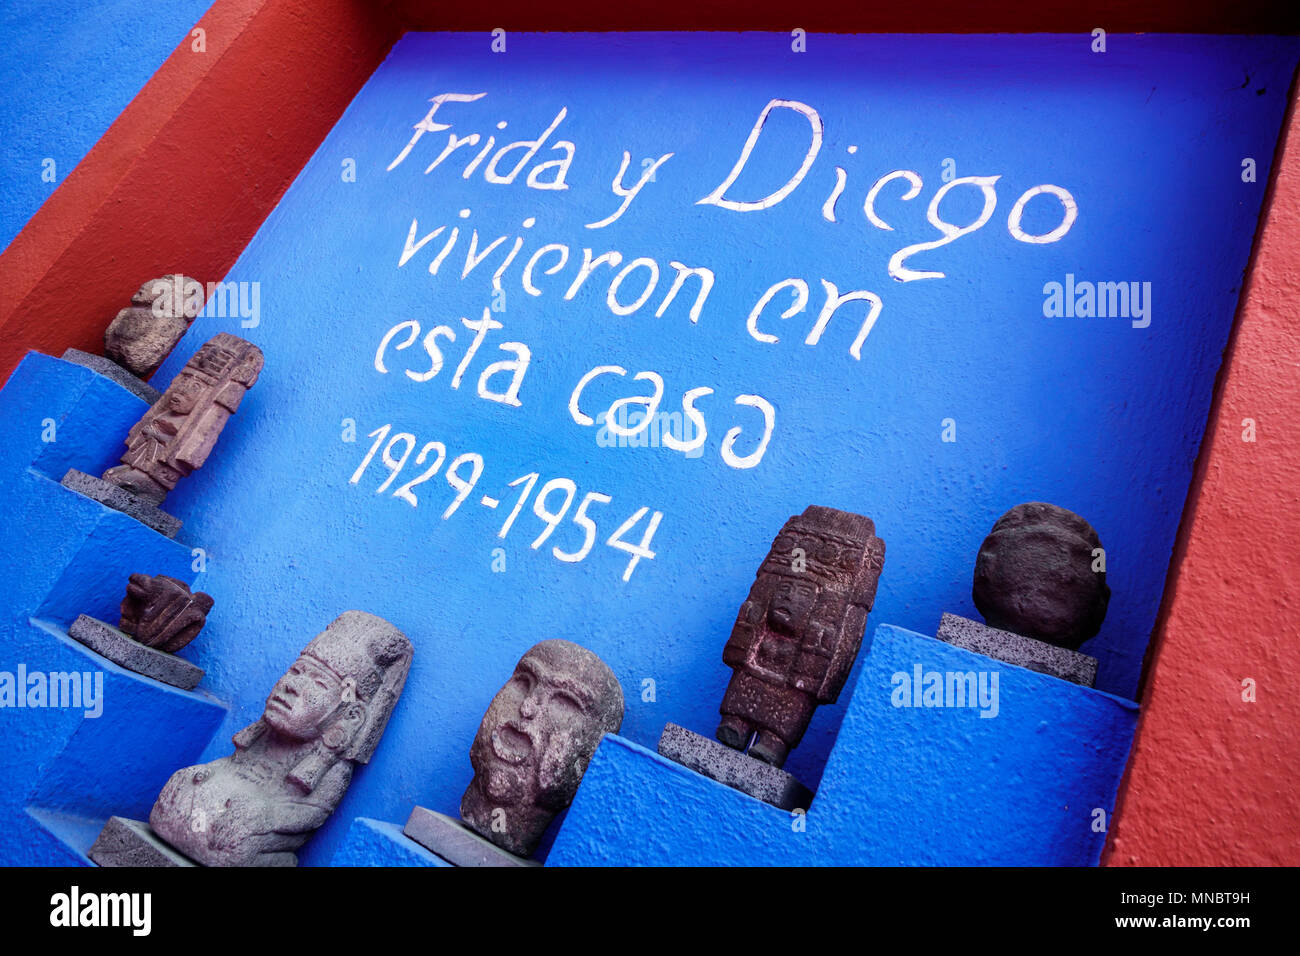 Mexico City,Mexican,Hispanic,Coyoacan,Del Carmen,Frida Kahlo Museum Museo Frida Kahlo,Blue House,interior inside courtyard,sign,Frida & Diego lived in Stock Photo